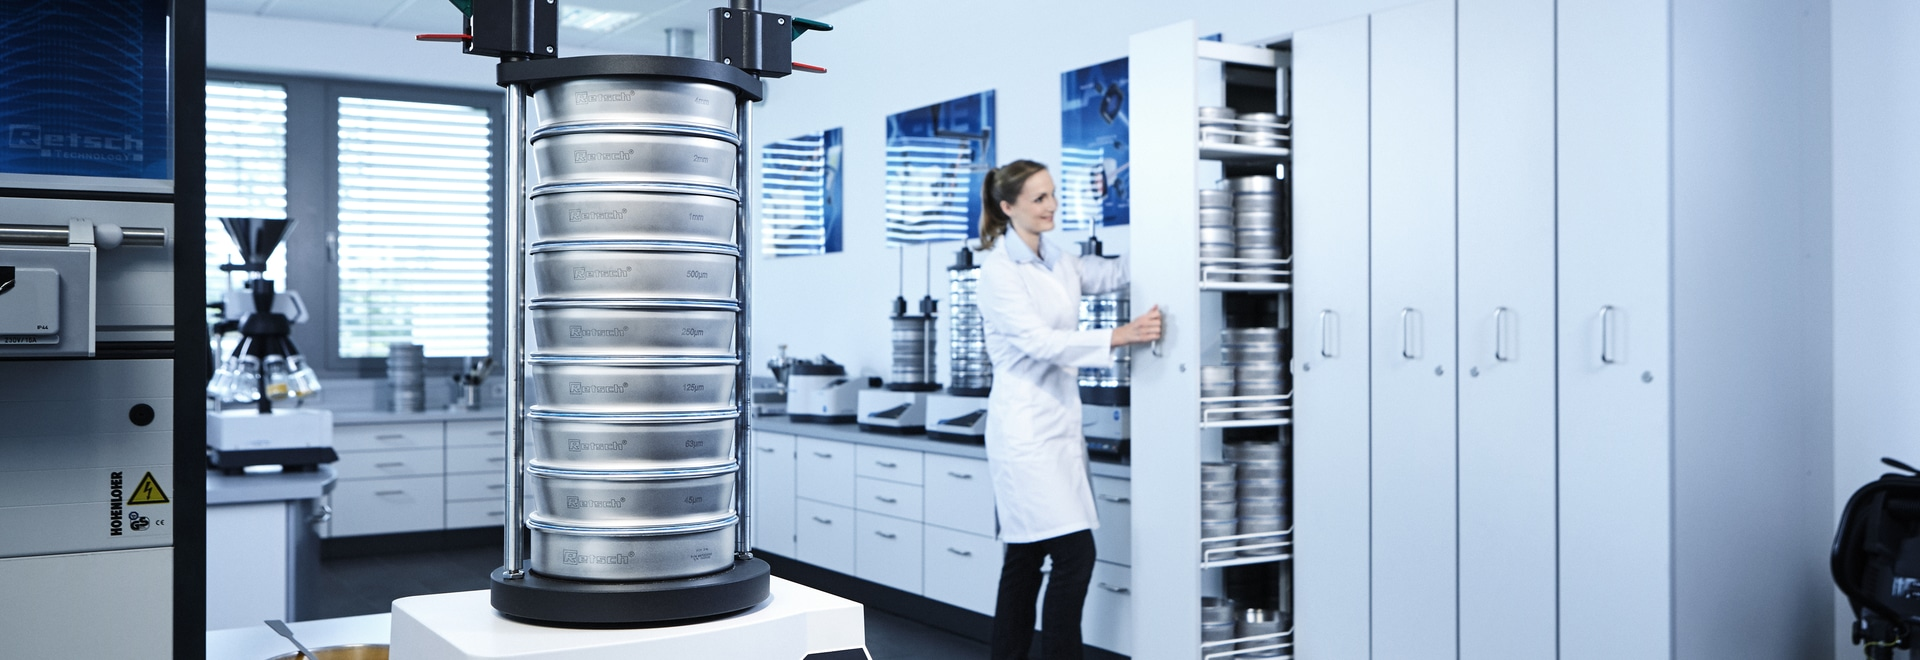 New vibratory sieve shakers make sieve analysis more convenient